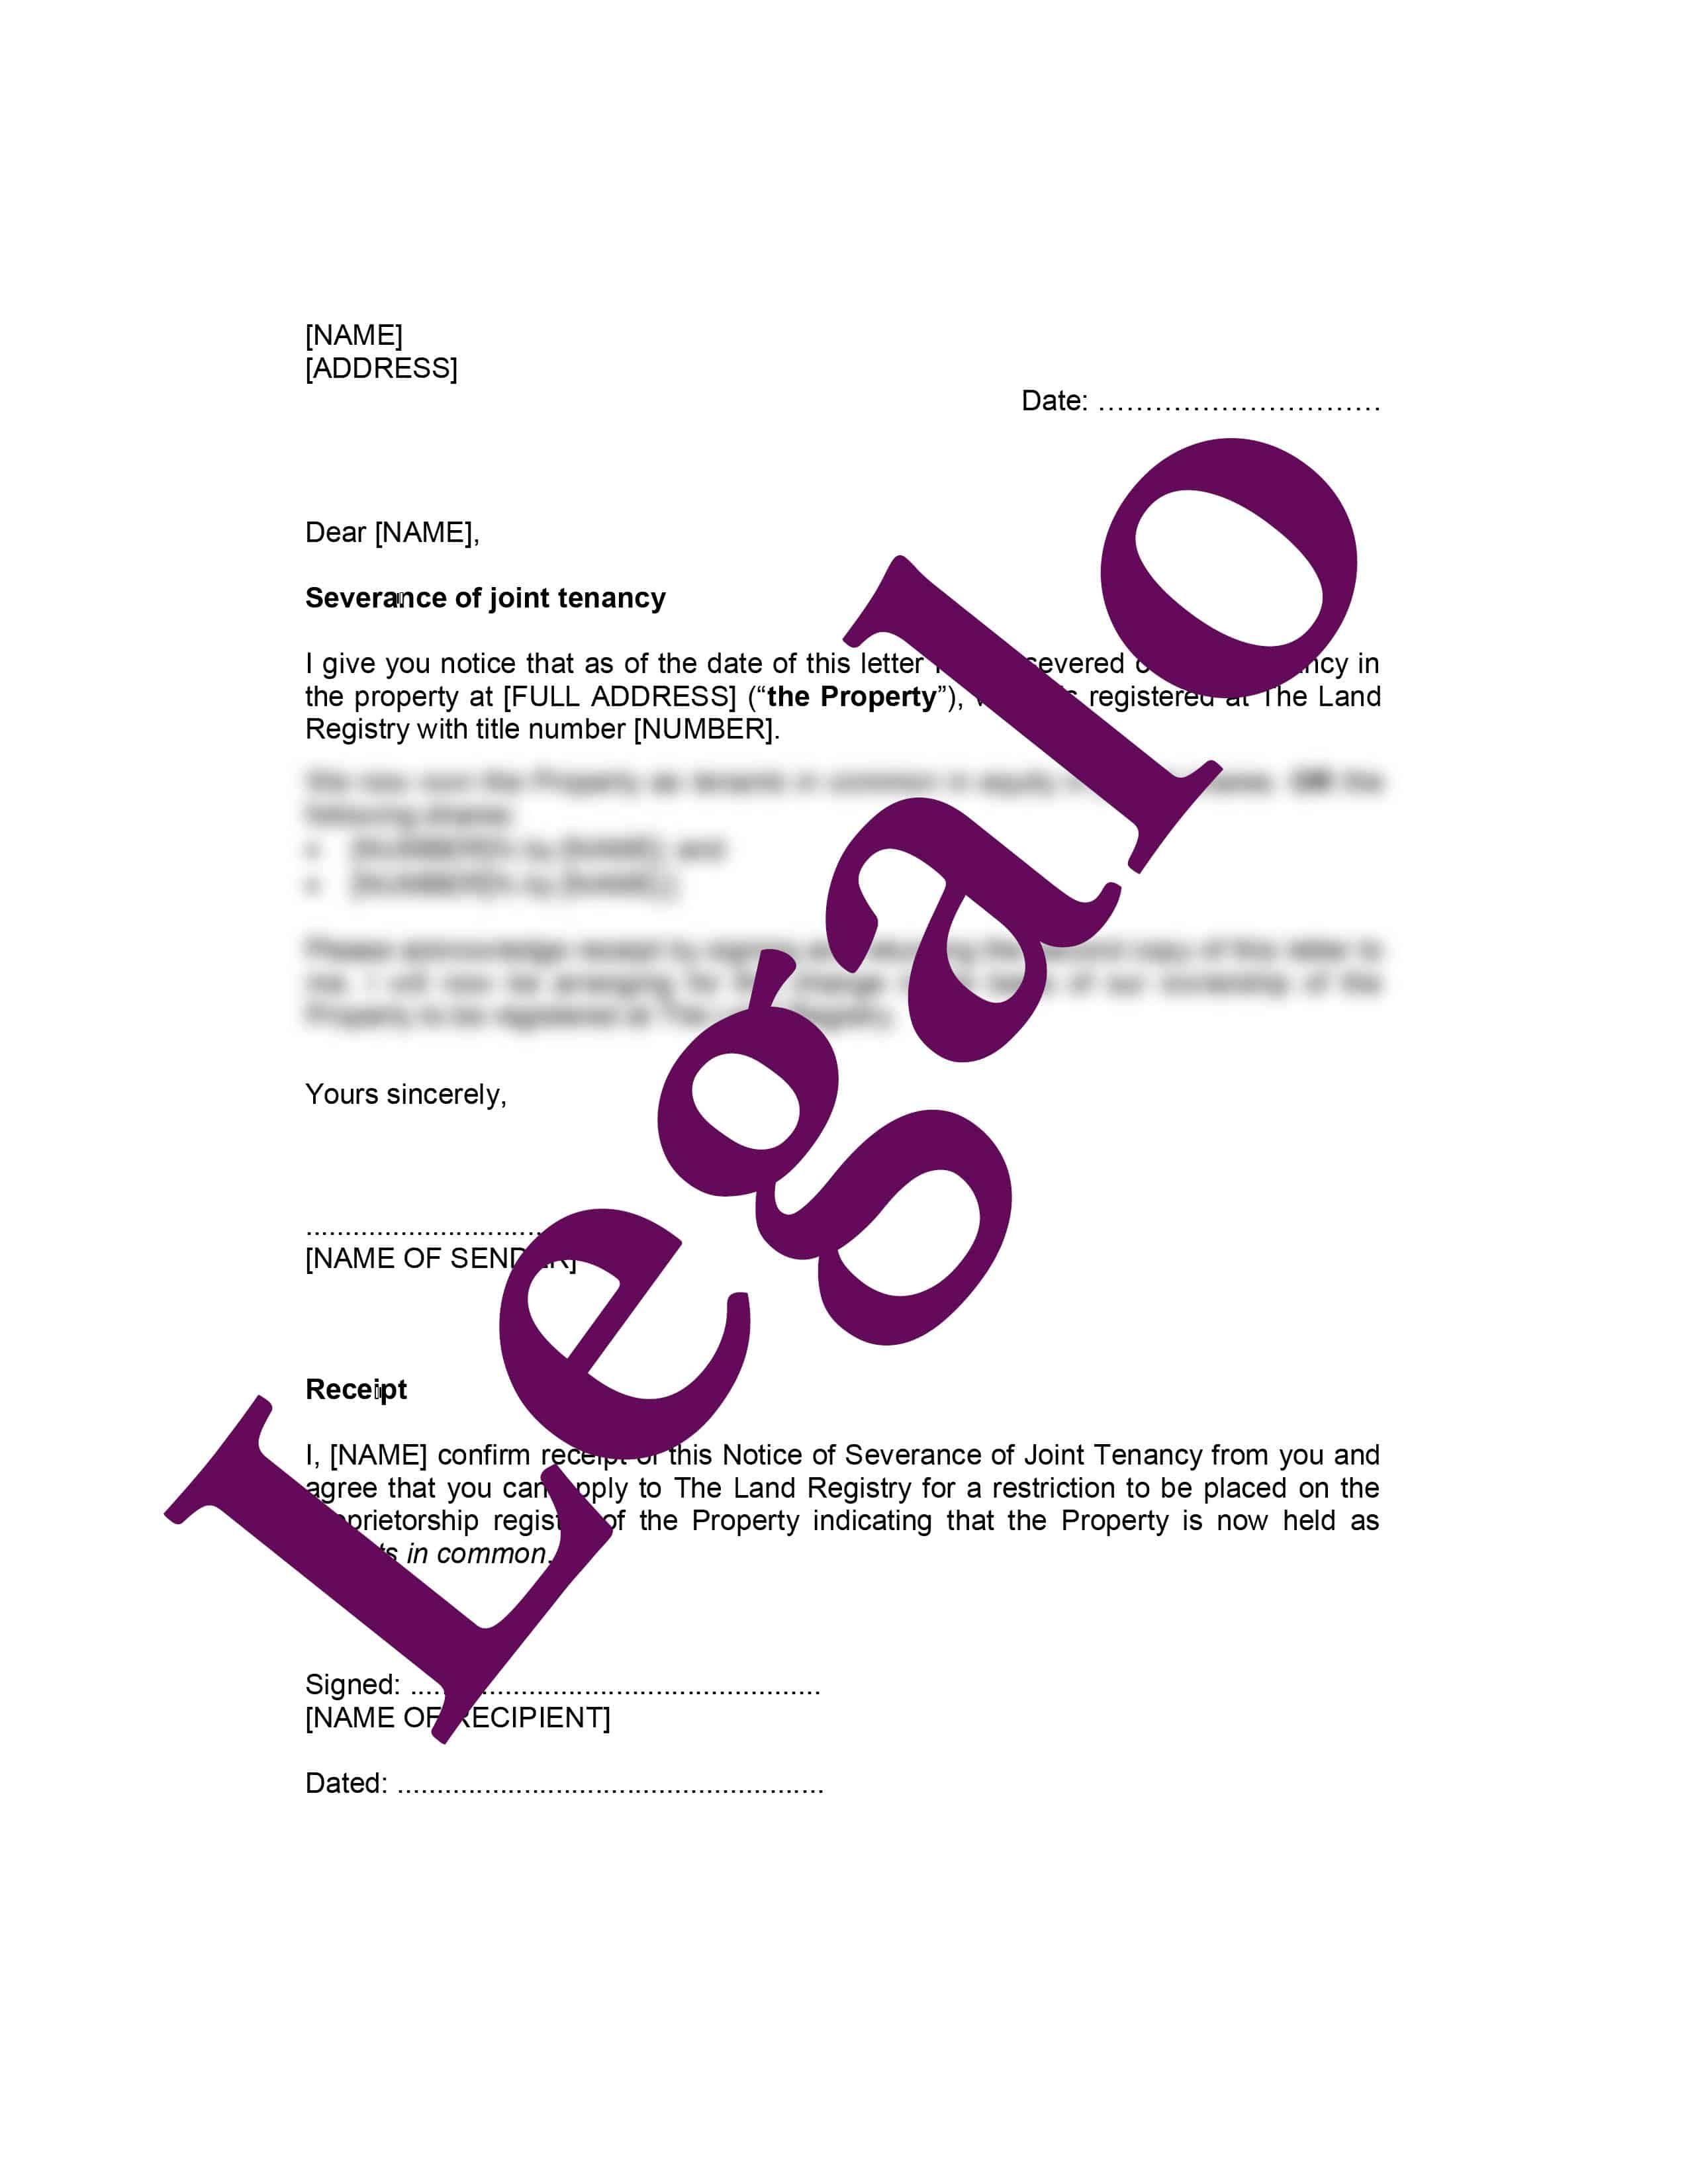 letter severing joint tenancy preview image